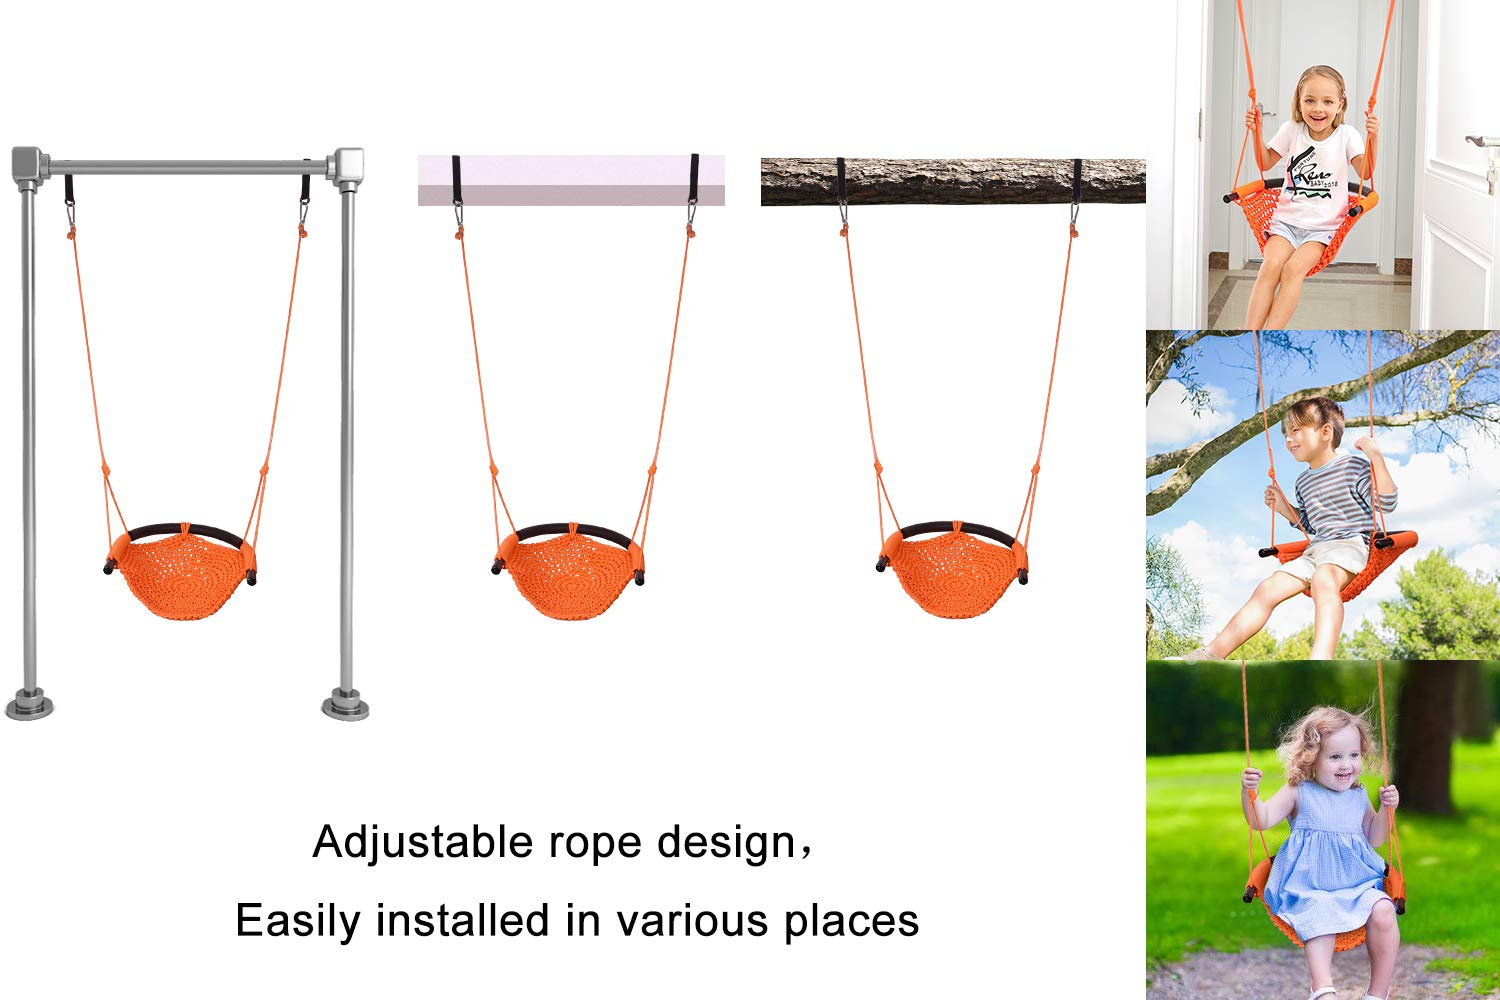 JKsmart Swing Seat for Kids Heavy Duty Rope Play Secure Children Swing Set,Perfect for Indoor,Outdoor,Playground,Home,Tree,with Snap Hooks and Swing Straps,440 lbs Capacity,Orange(Patent Pending) by JKsmart (Image #4)